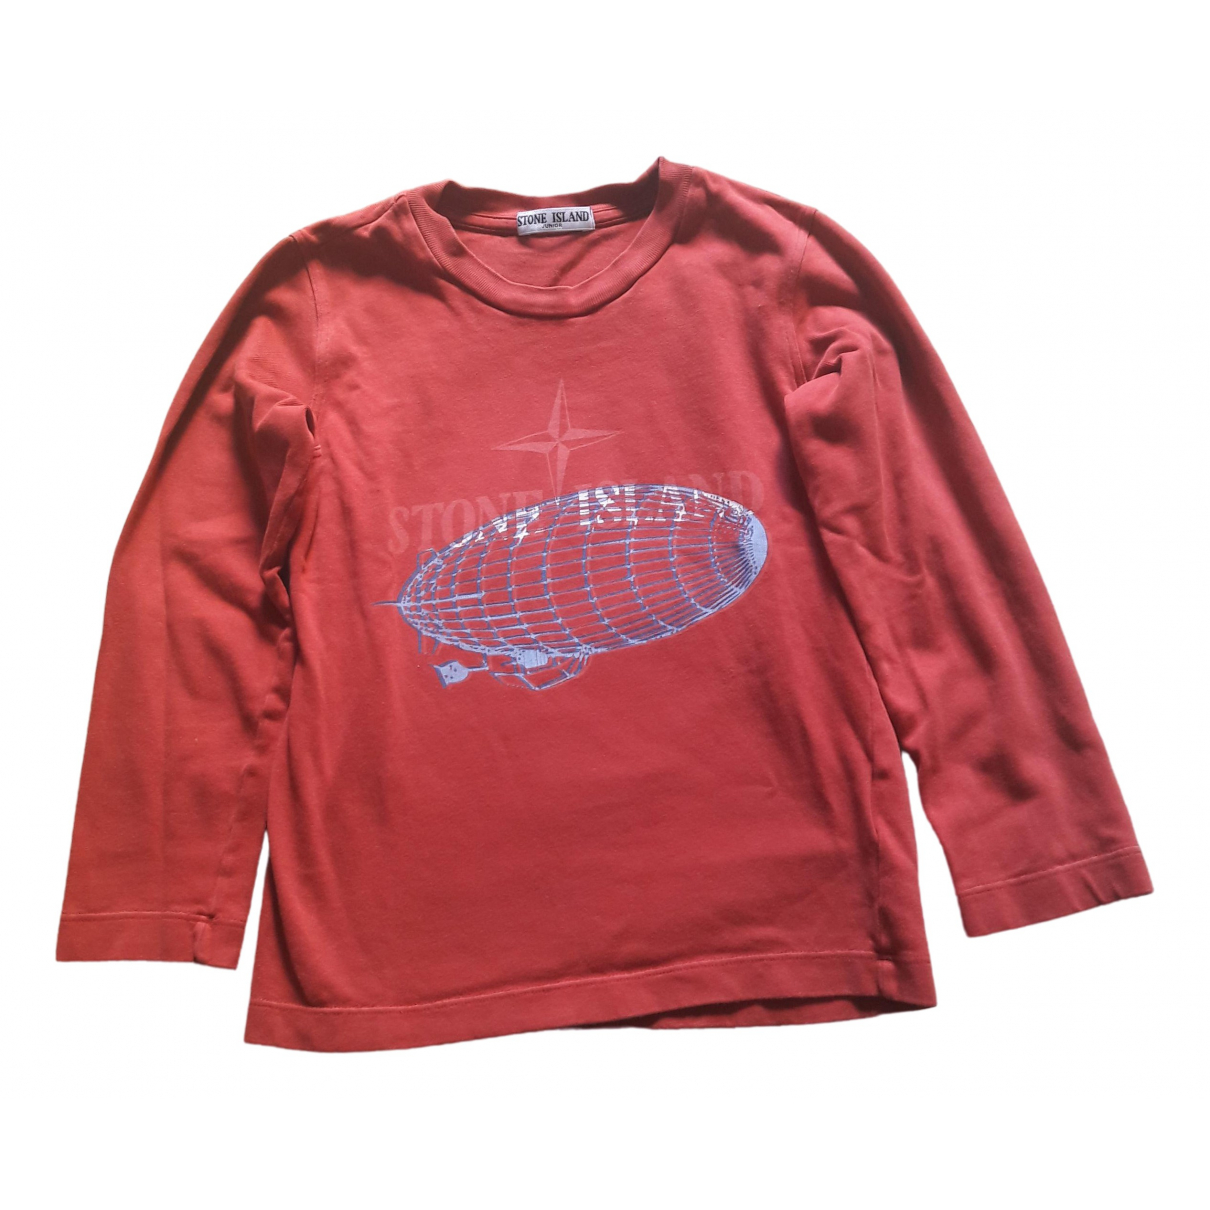 Stone Island \N Khaki Cotton  top for Kids 6 years - up to 114cm FR